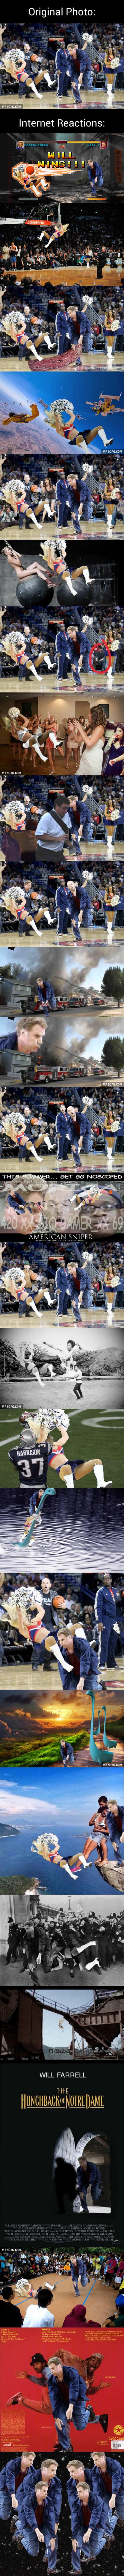 Will Ferrell Hits Cheerleader In Face With A Basketball, And Then It Started A Battle... A Photoshop Battle